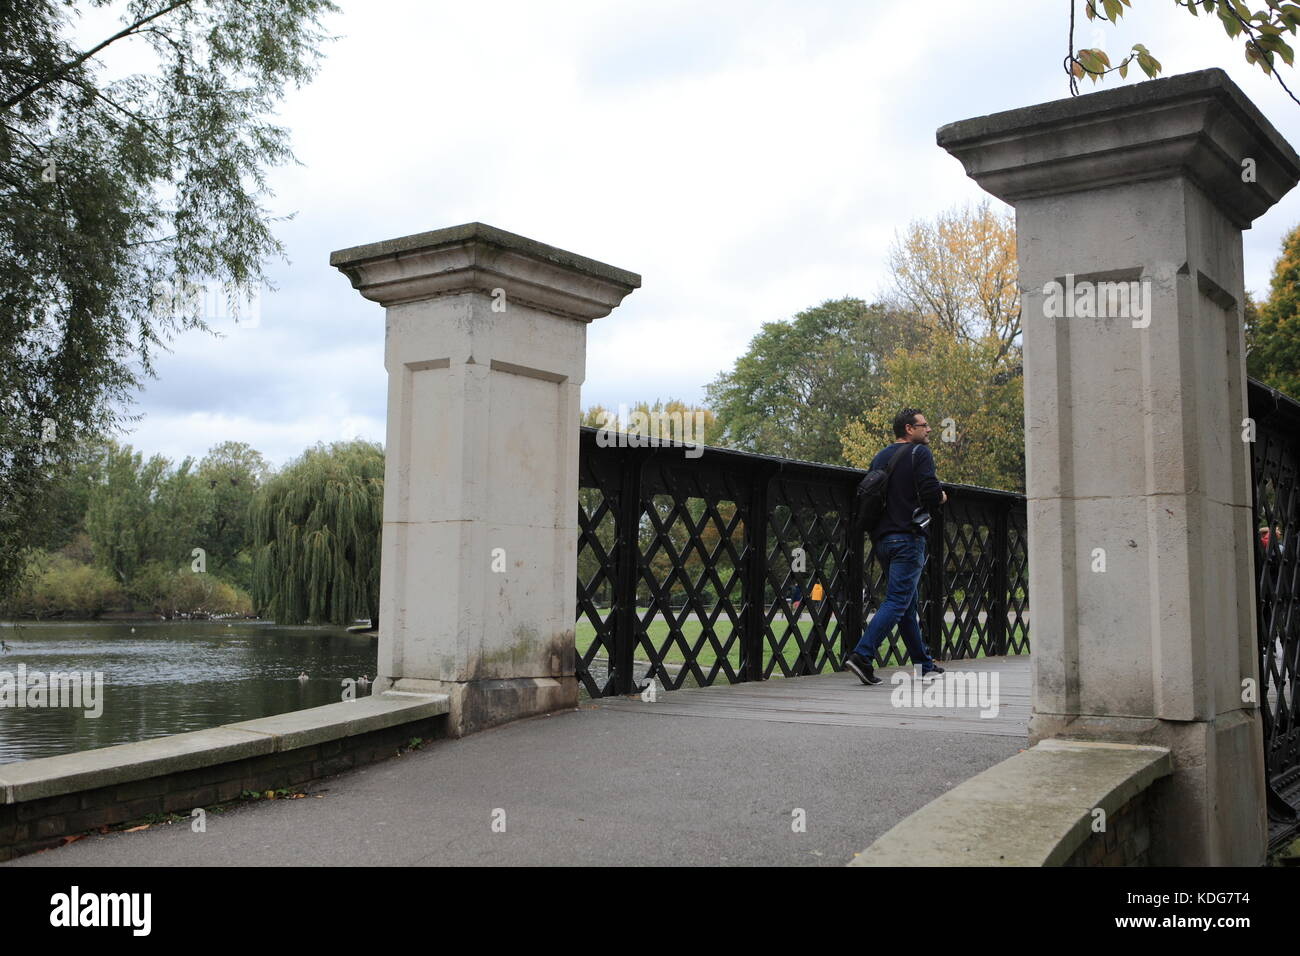 Man walks over a footbridge in Regents Park, London.  The river in the background.  England UK - Stock Image